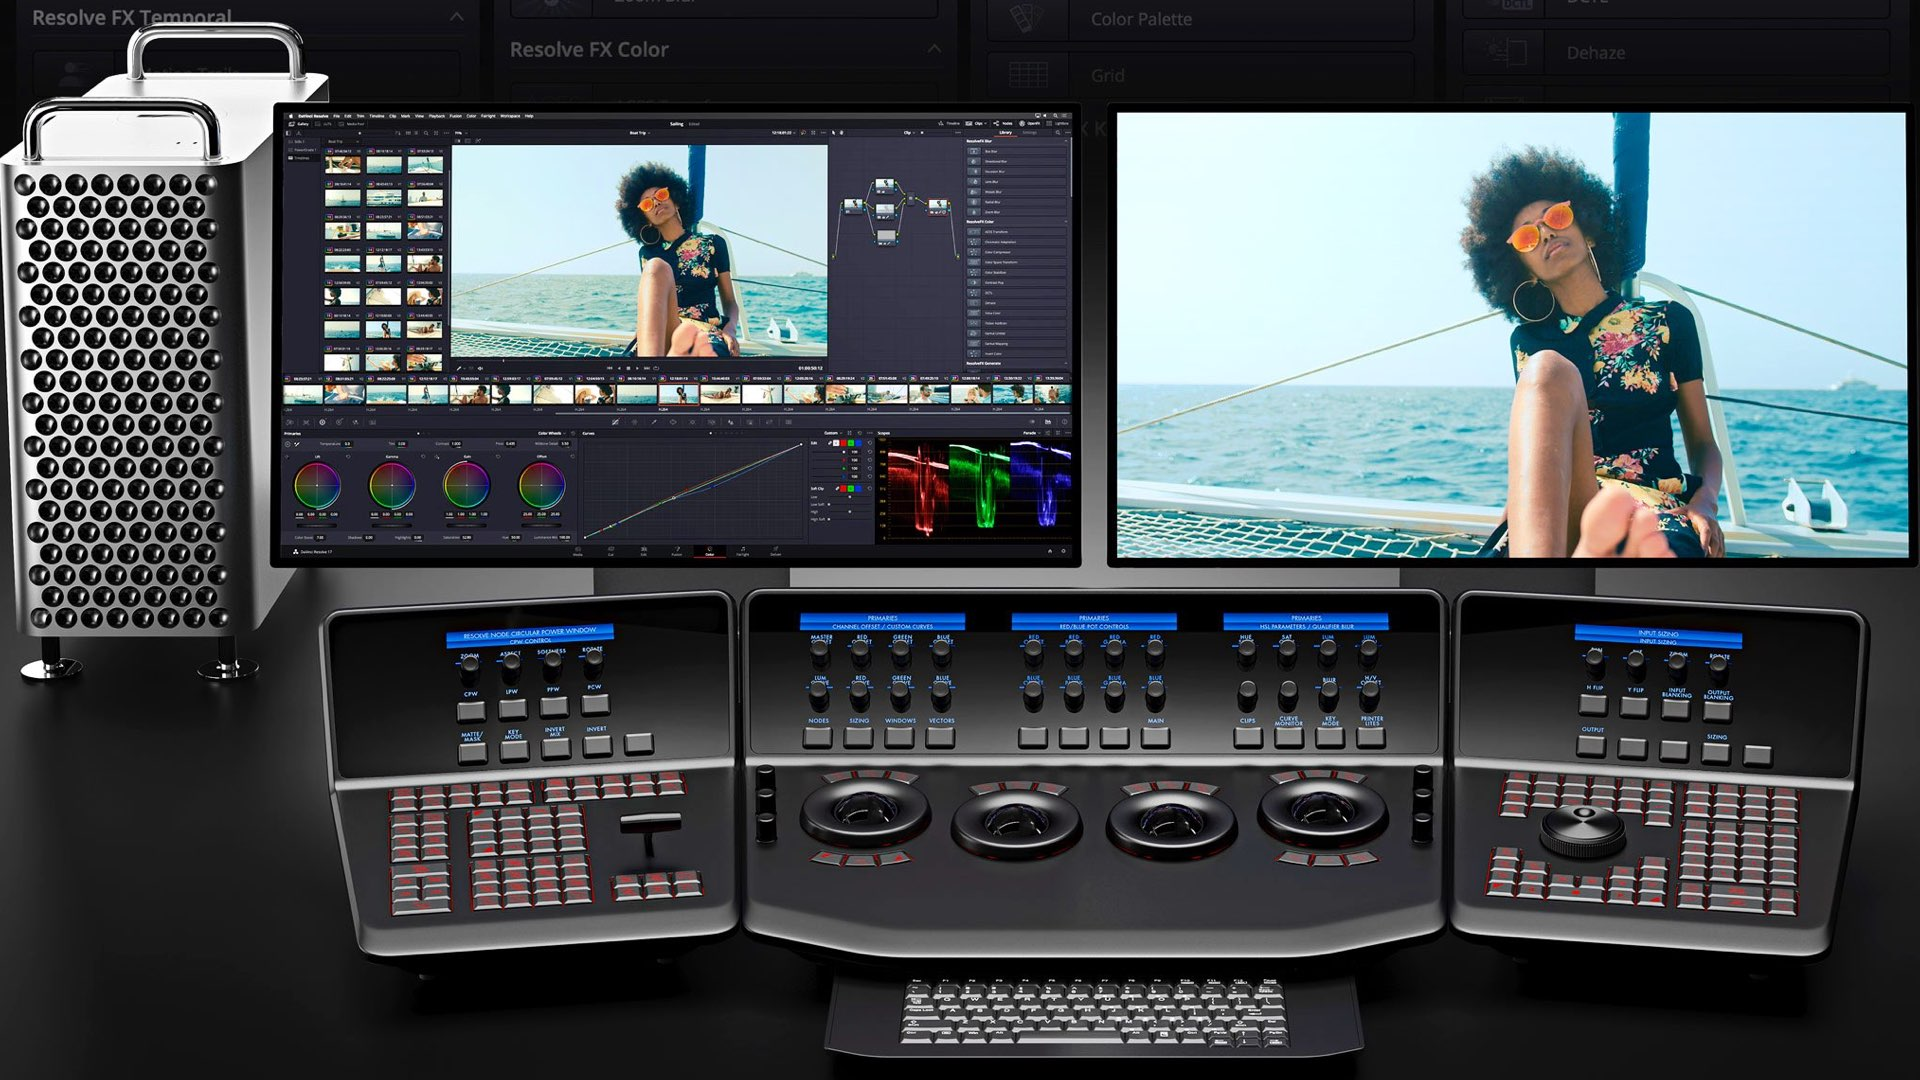 Davinci Resolve 17 Released The Biggest Update In The History Of Davinci Y M Cinema News Insights On Digital Cinema